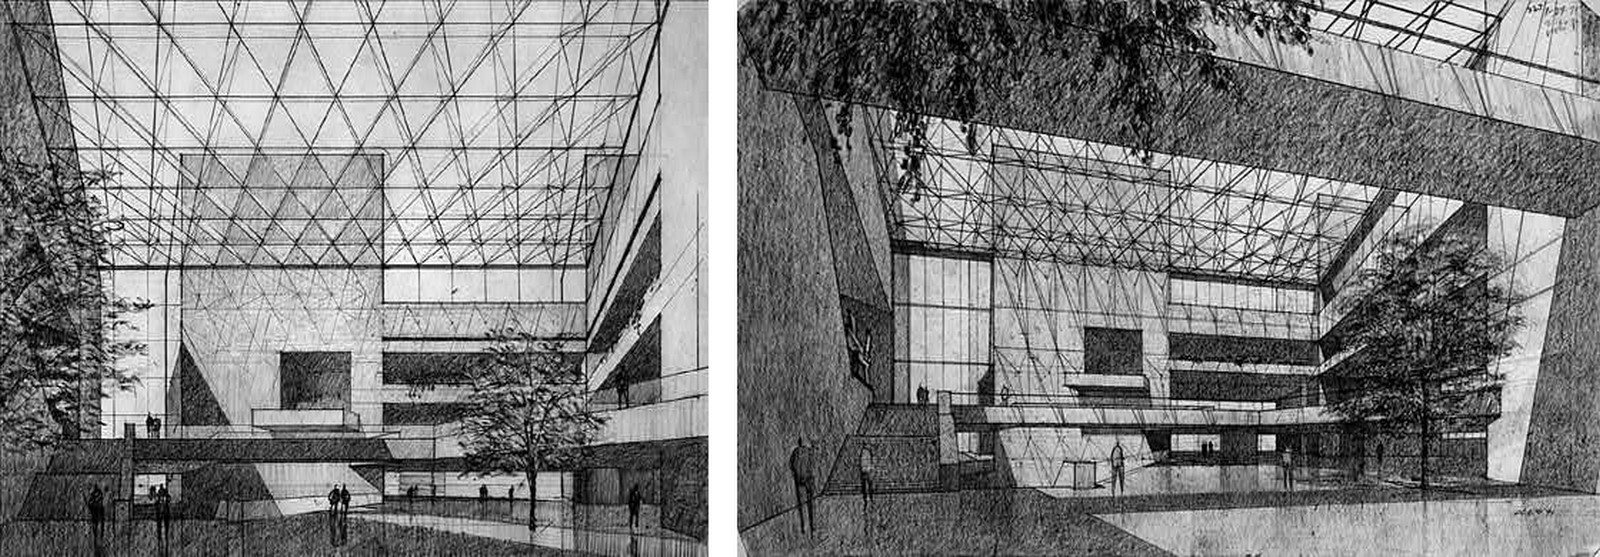 National Gallery of Art, East Building by I.M.Pei- A symbol of American democracy - Sheet8